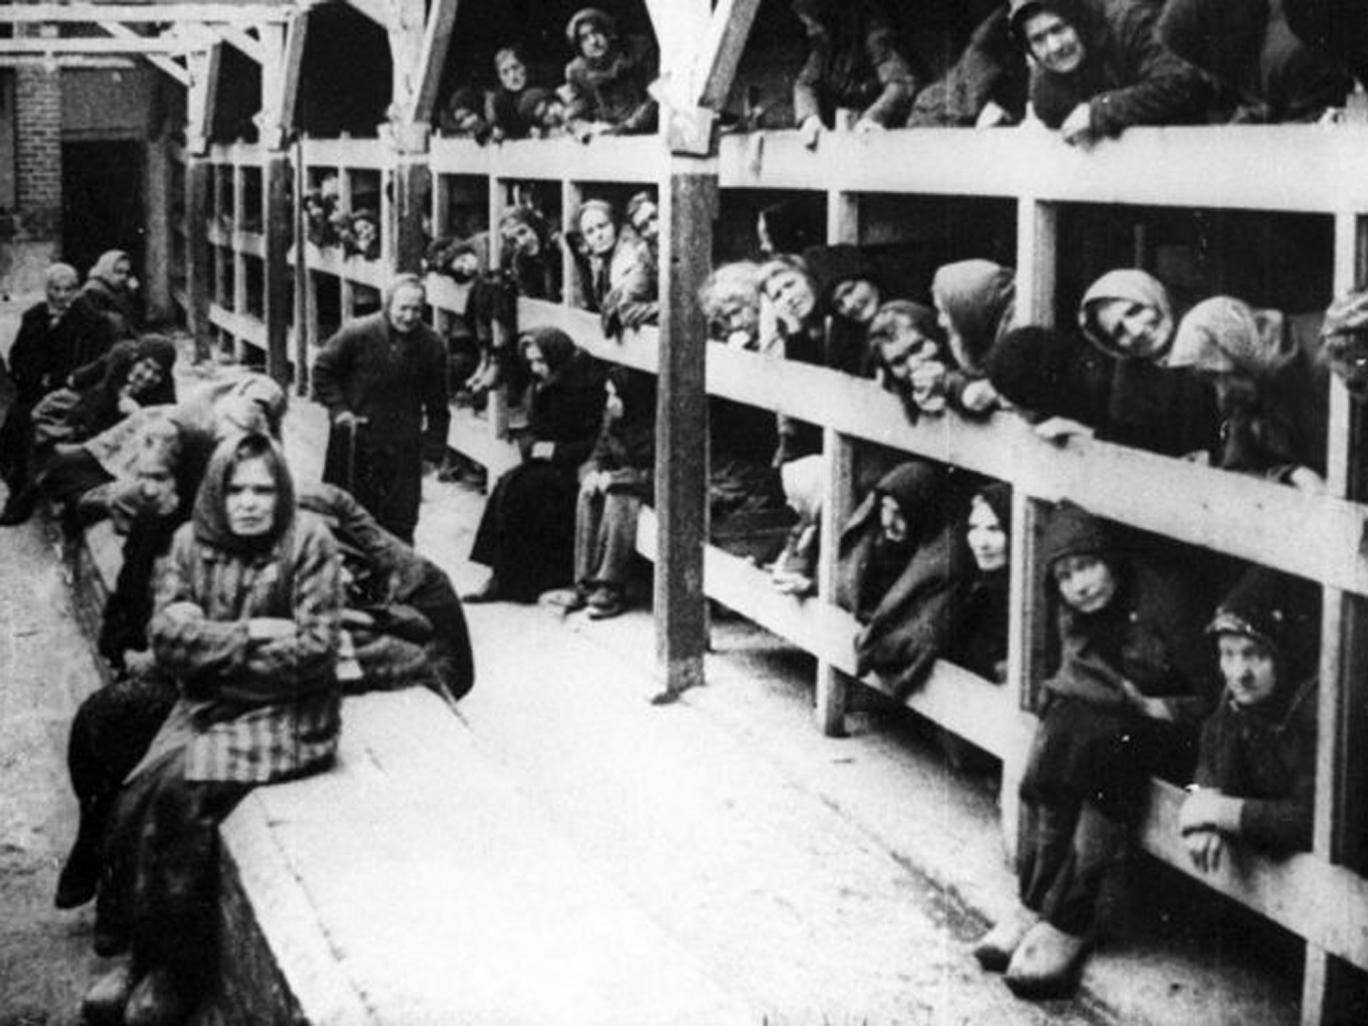 The network of camps and ghettos set up by the Nazis to conduct the Holocaust and persecute millions of victims across Europe may have been far larger and systematic than previously believed